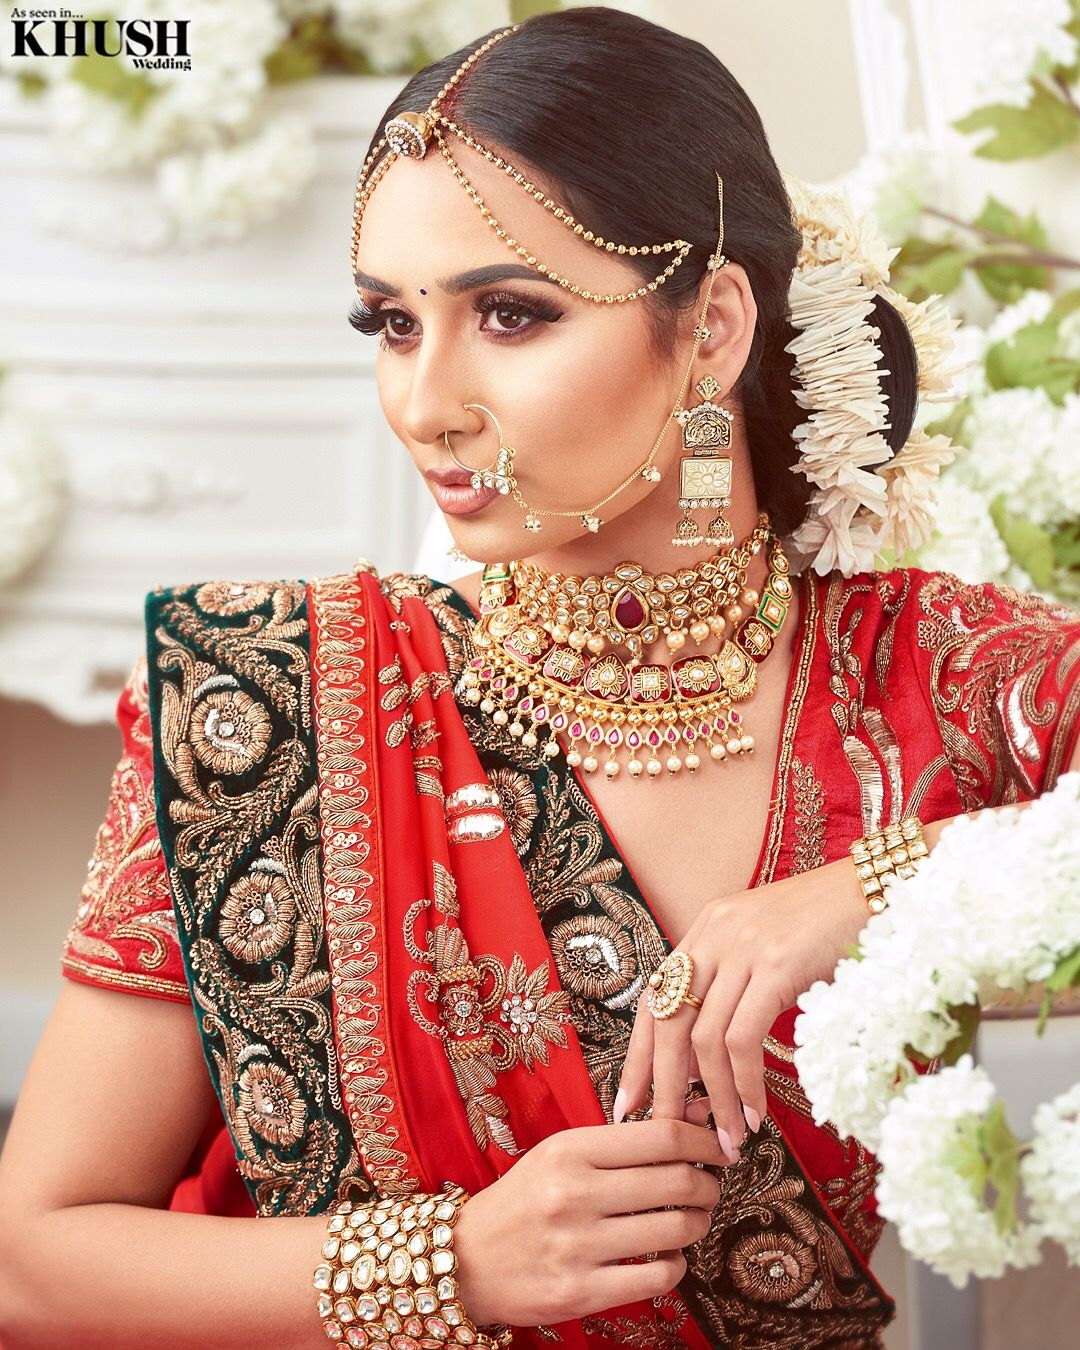 Looking for an elegant and flawless wedding day look? Runa Ikhlas Bridal Hair and Makeup Artist creates this iconic #makeup look that will remain timeless ...